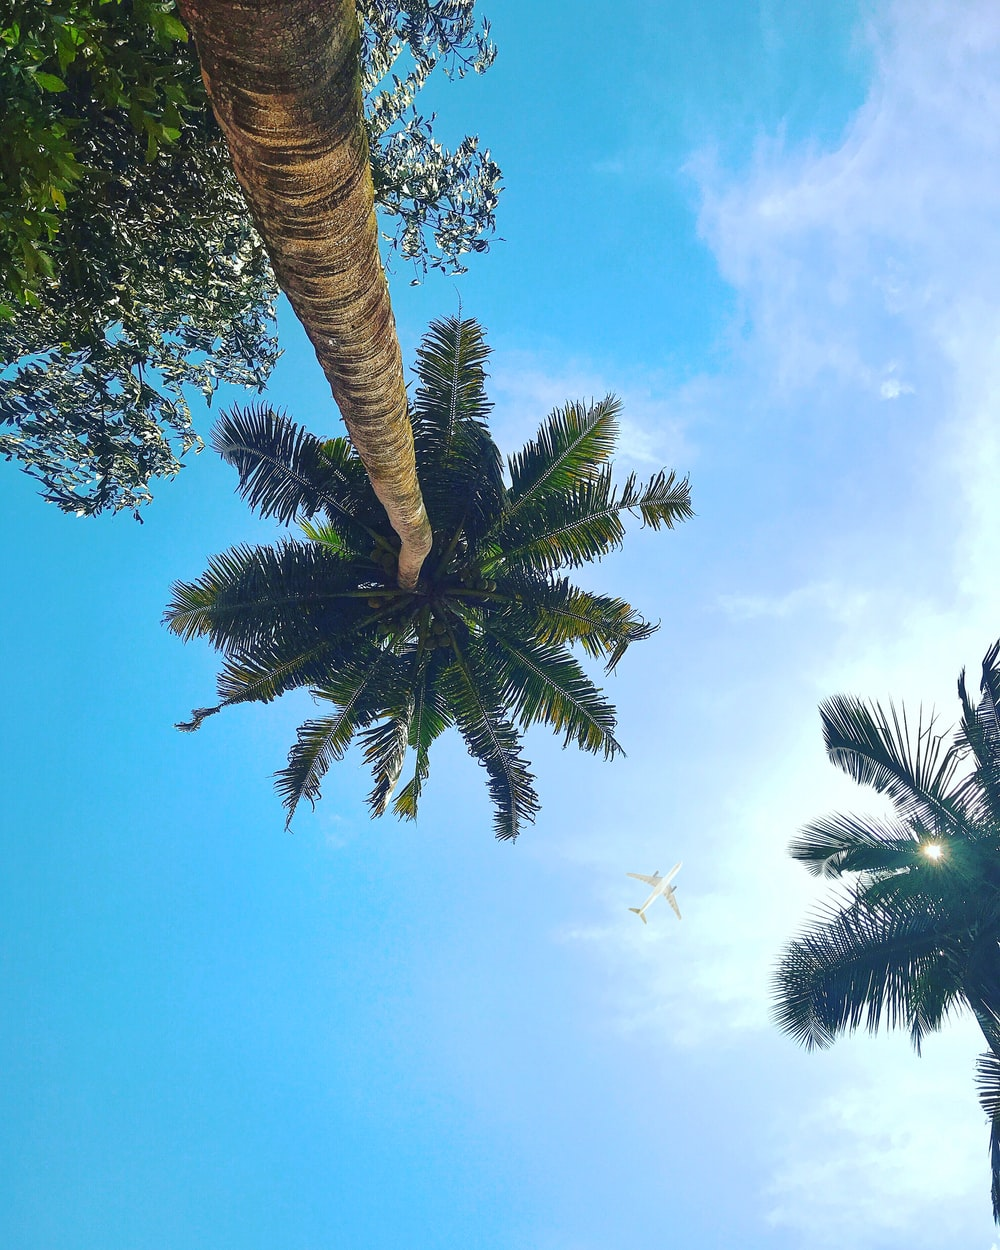 worm eye view of a coconut tree